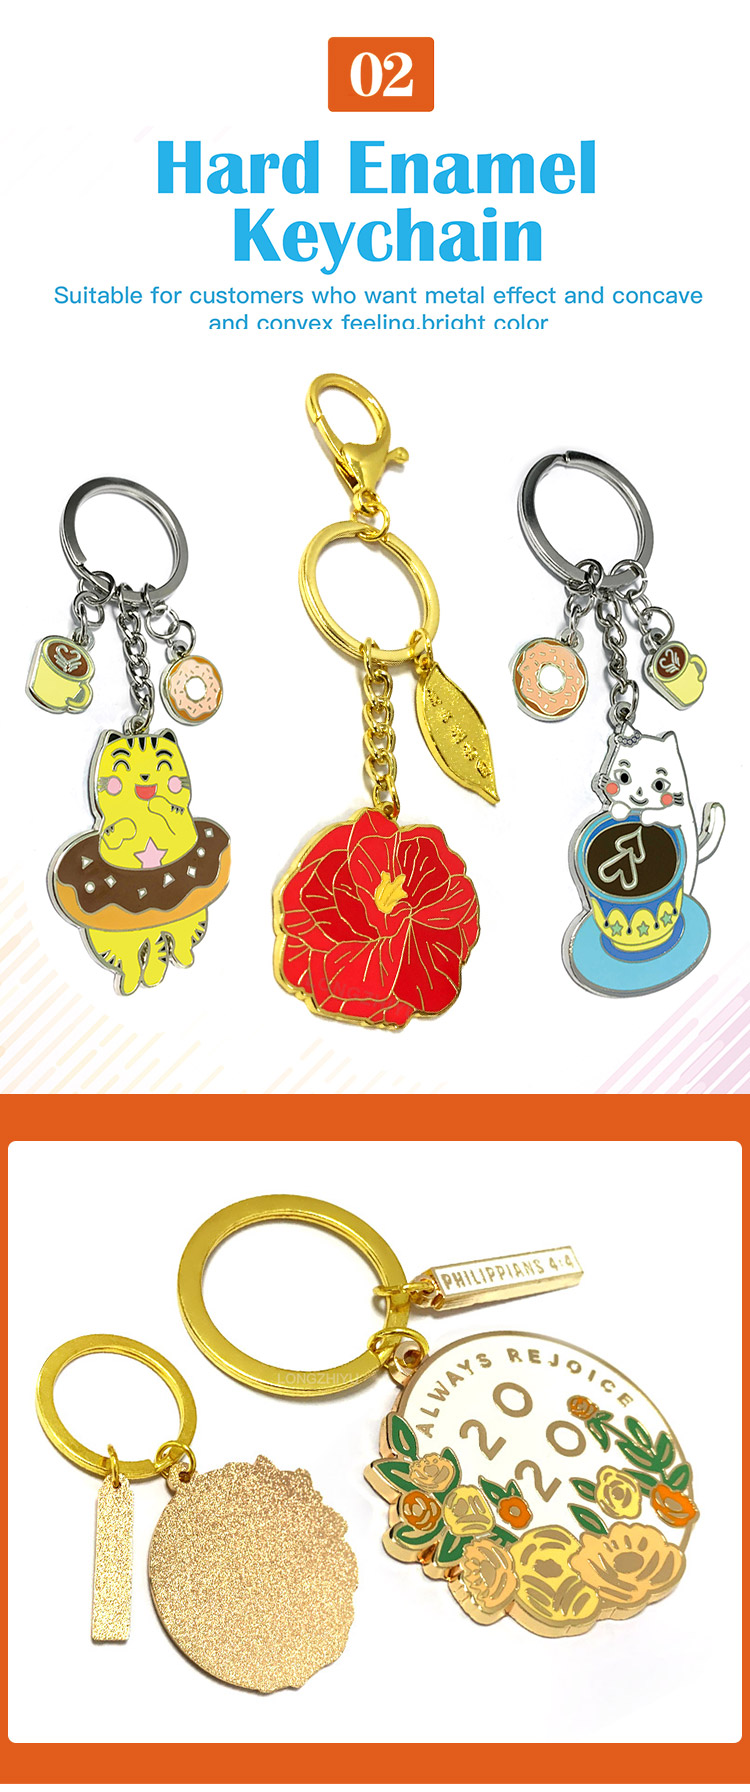 Longzhiyu 14 years professional customized logo cheaper contactless keychain soft enamel gold plating metal keychain